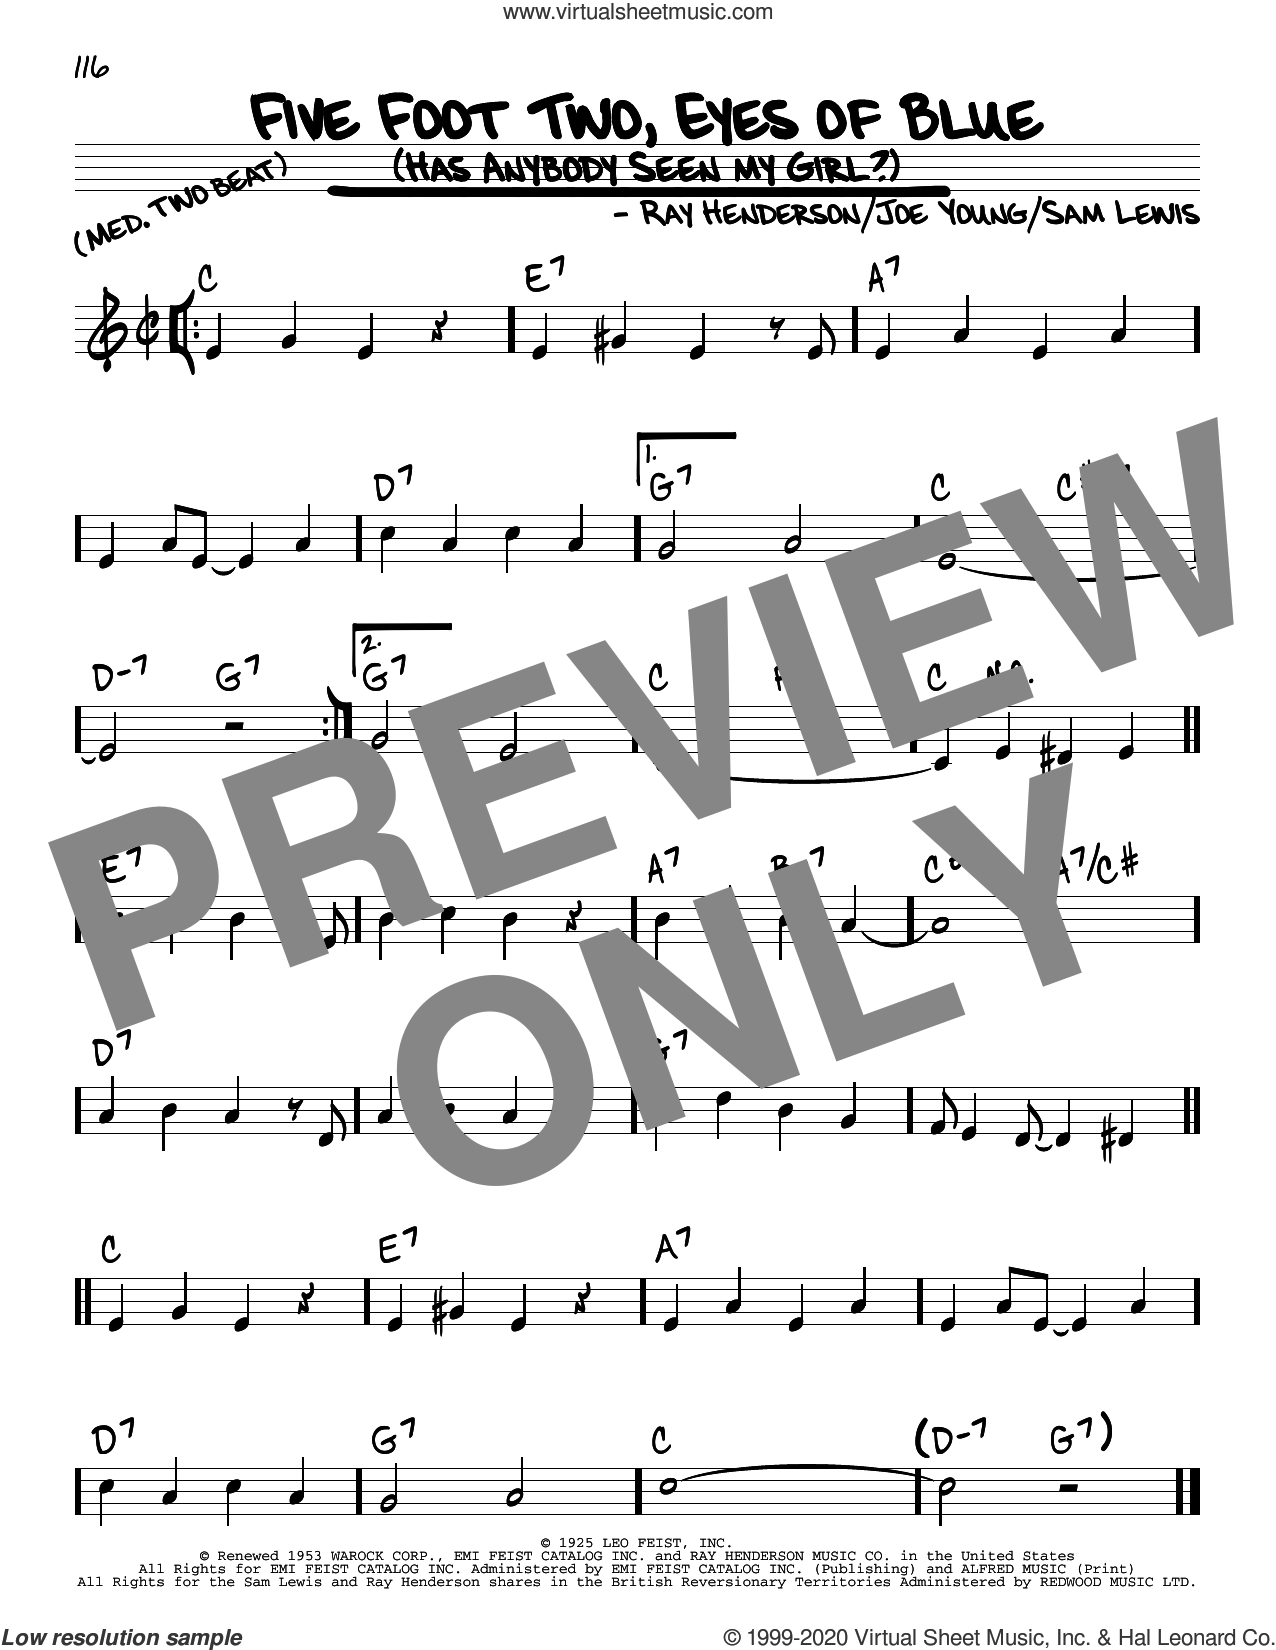 Five Foot Two, Eyes Of Blue (Has Anybody Seen My Girl?) sheet music for voice and other instruments (real book) by Joe Young, Ray Henderson and Sam Lewis, intermediate skill level